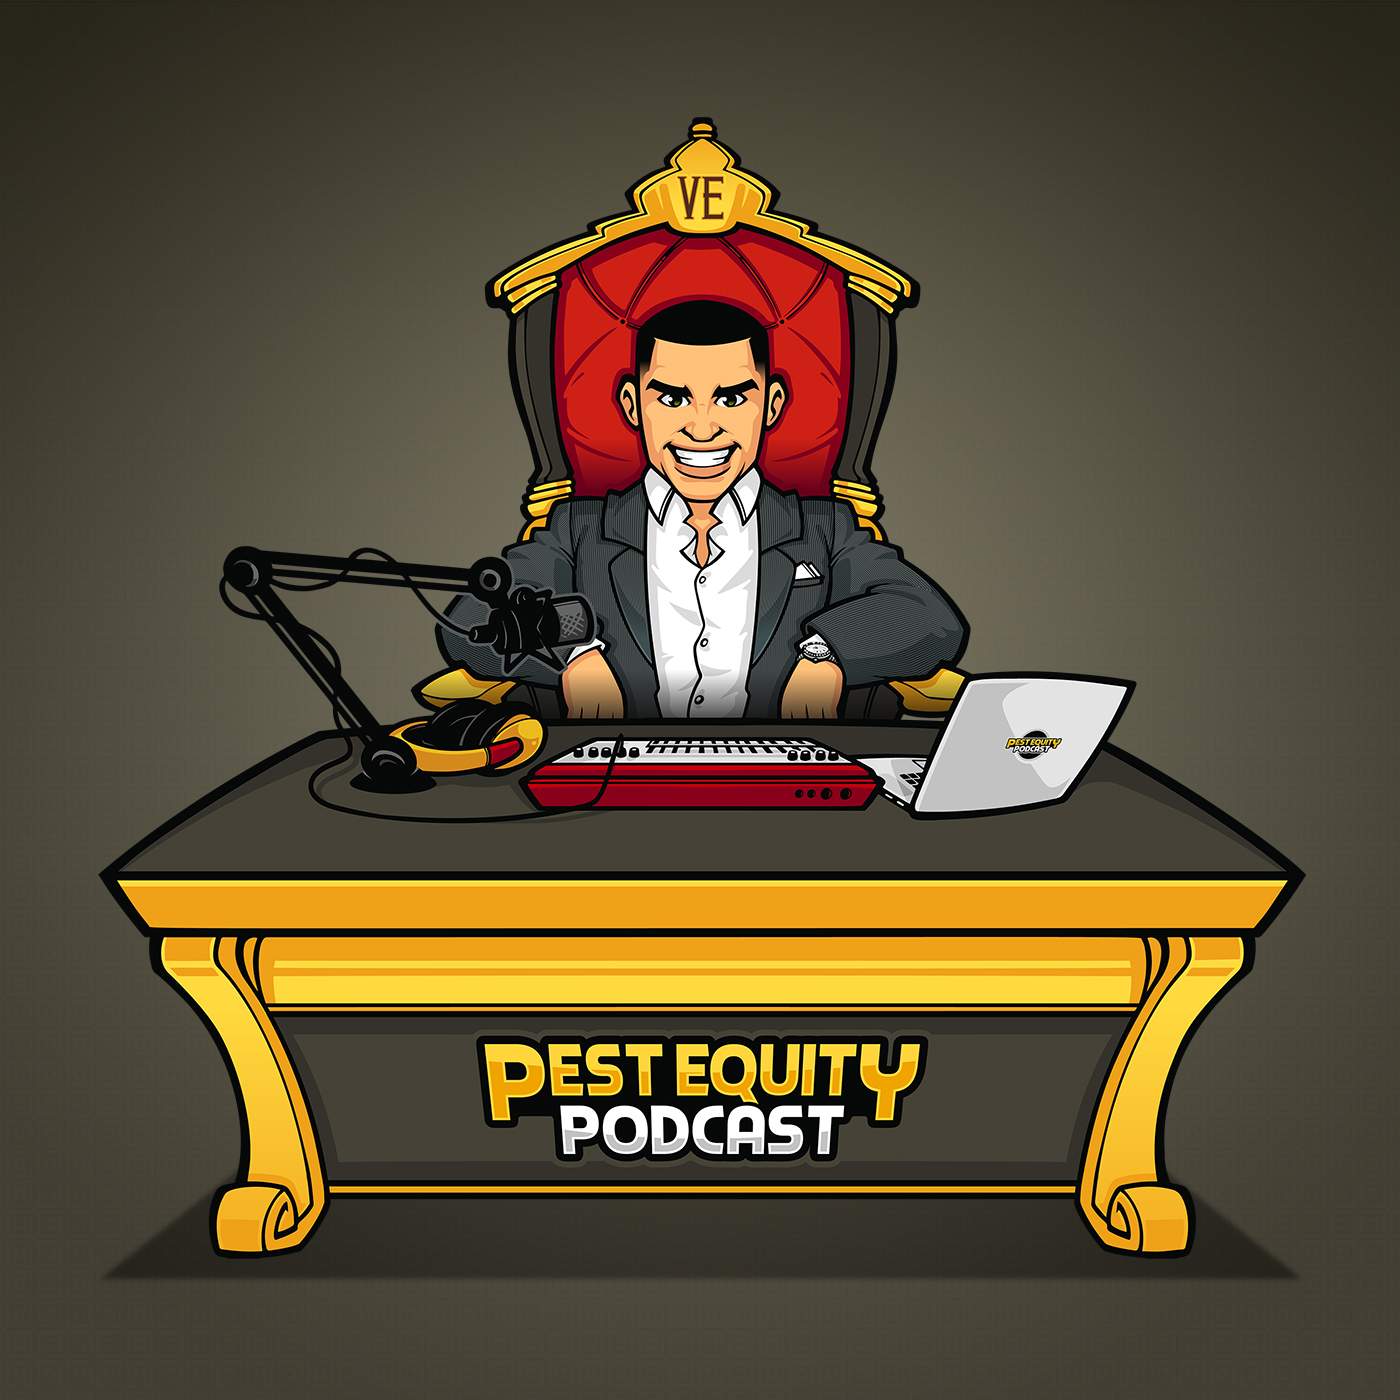 Pest Equity Podcast